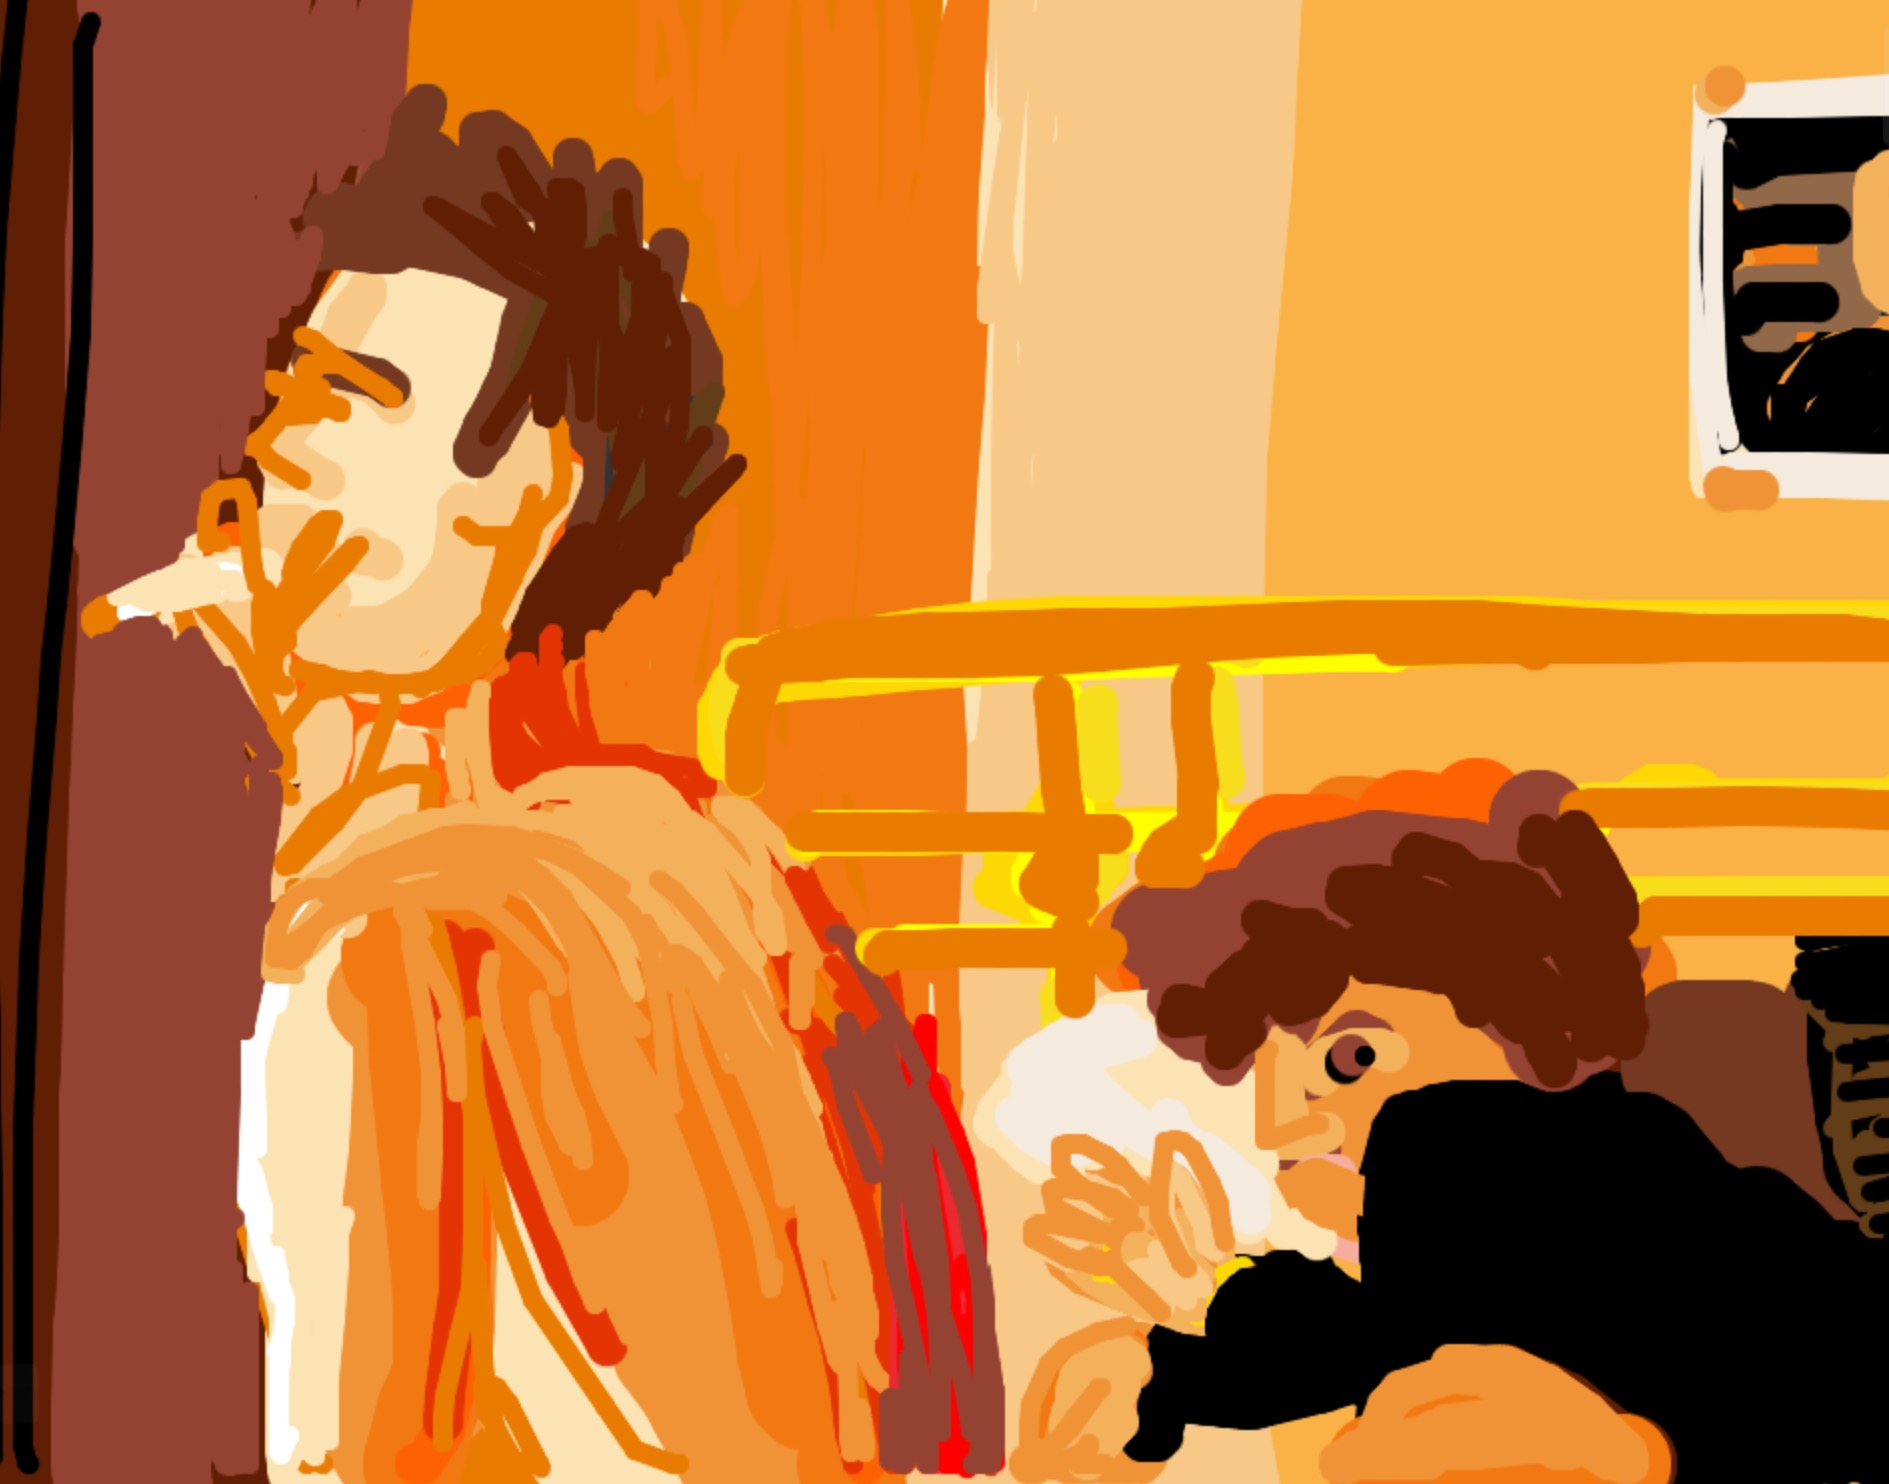 MuseumDraw of Nan Golden's   Nan & Brian in Bed, NYC 1983  , From   The Ballad of Sexual Dependency.